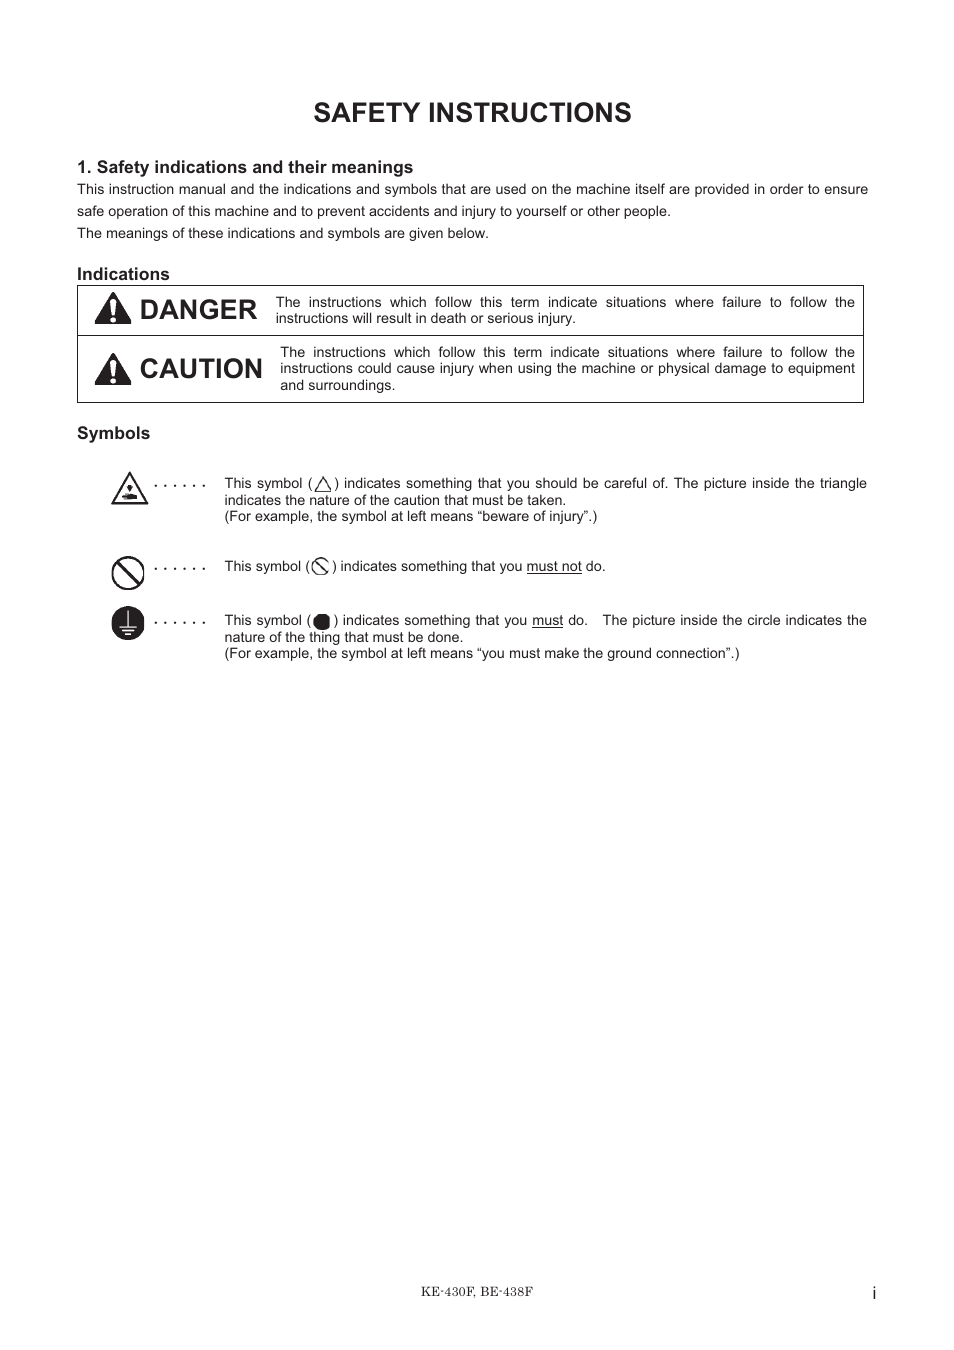 Safety Instructions Danger Caution Brother Be 438f User Manual